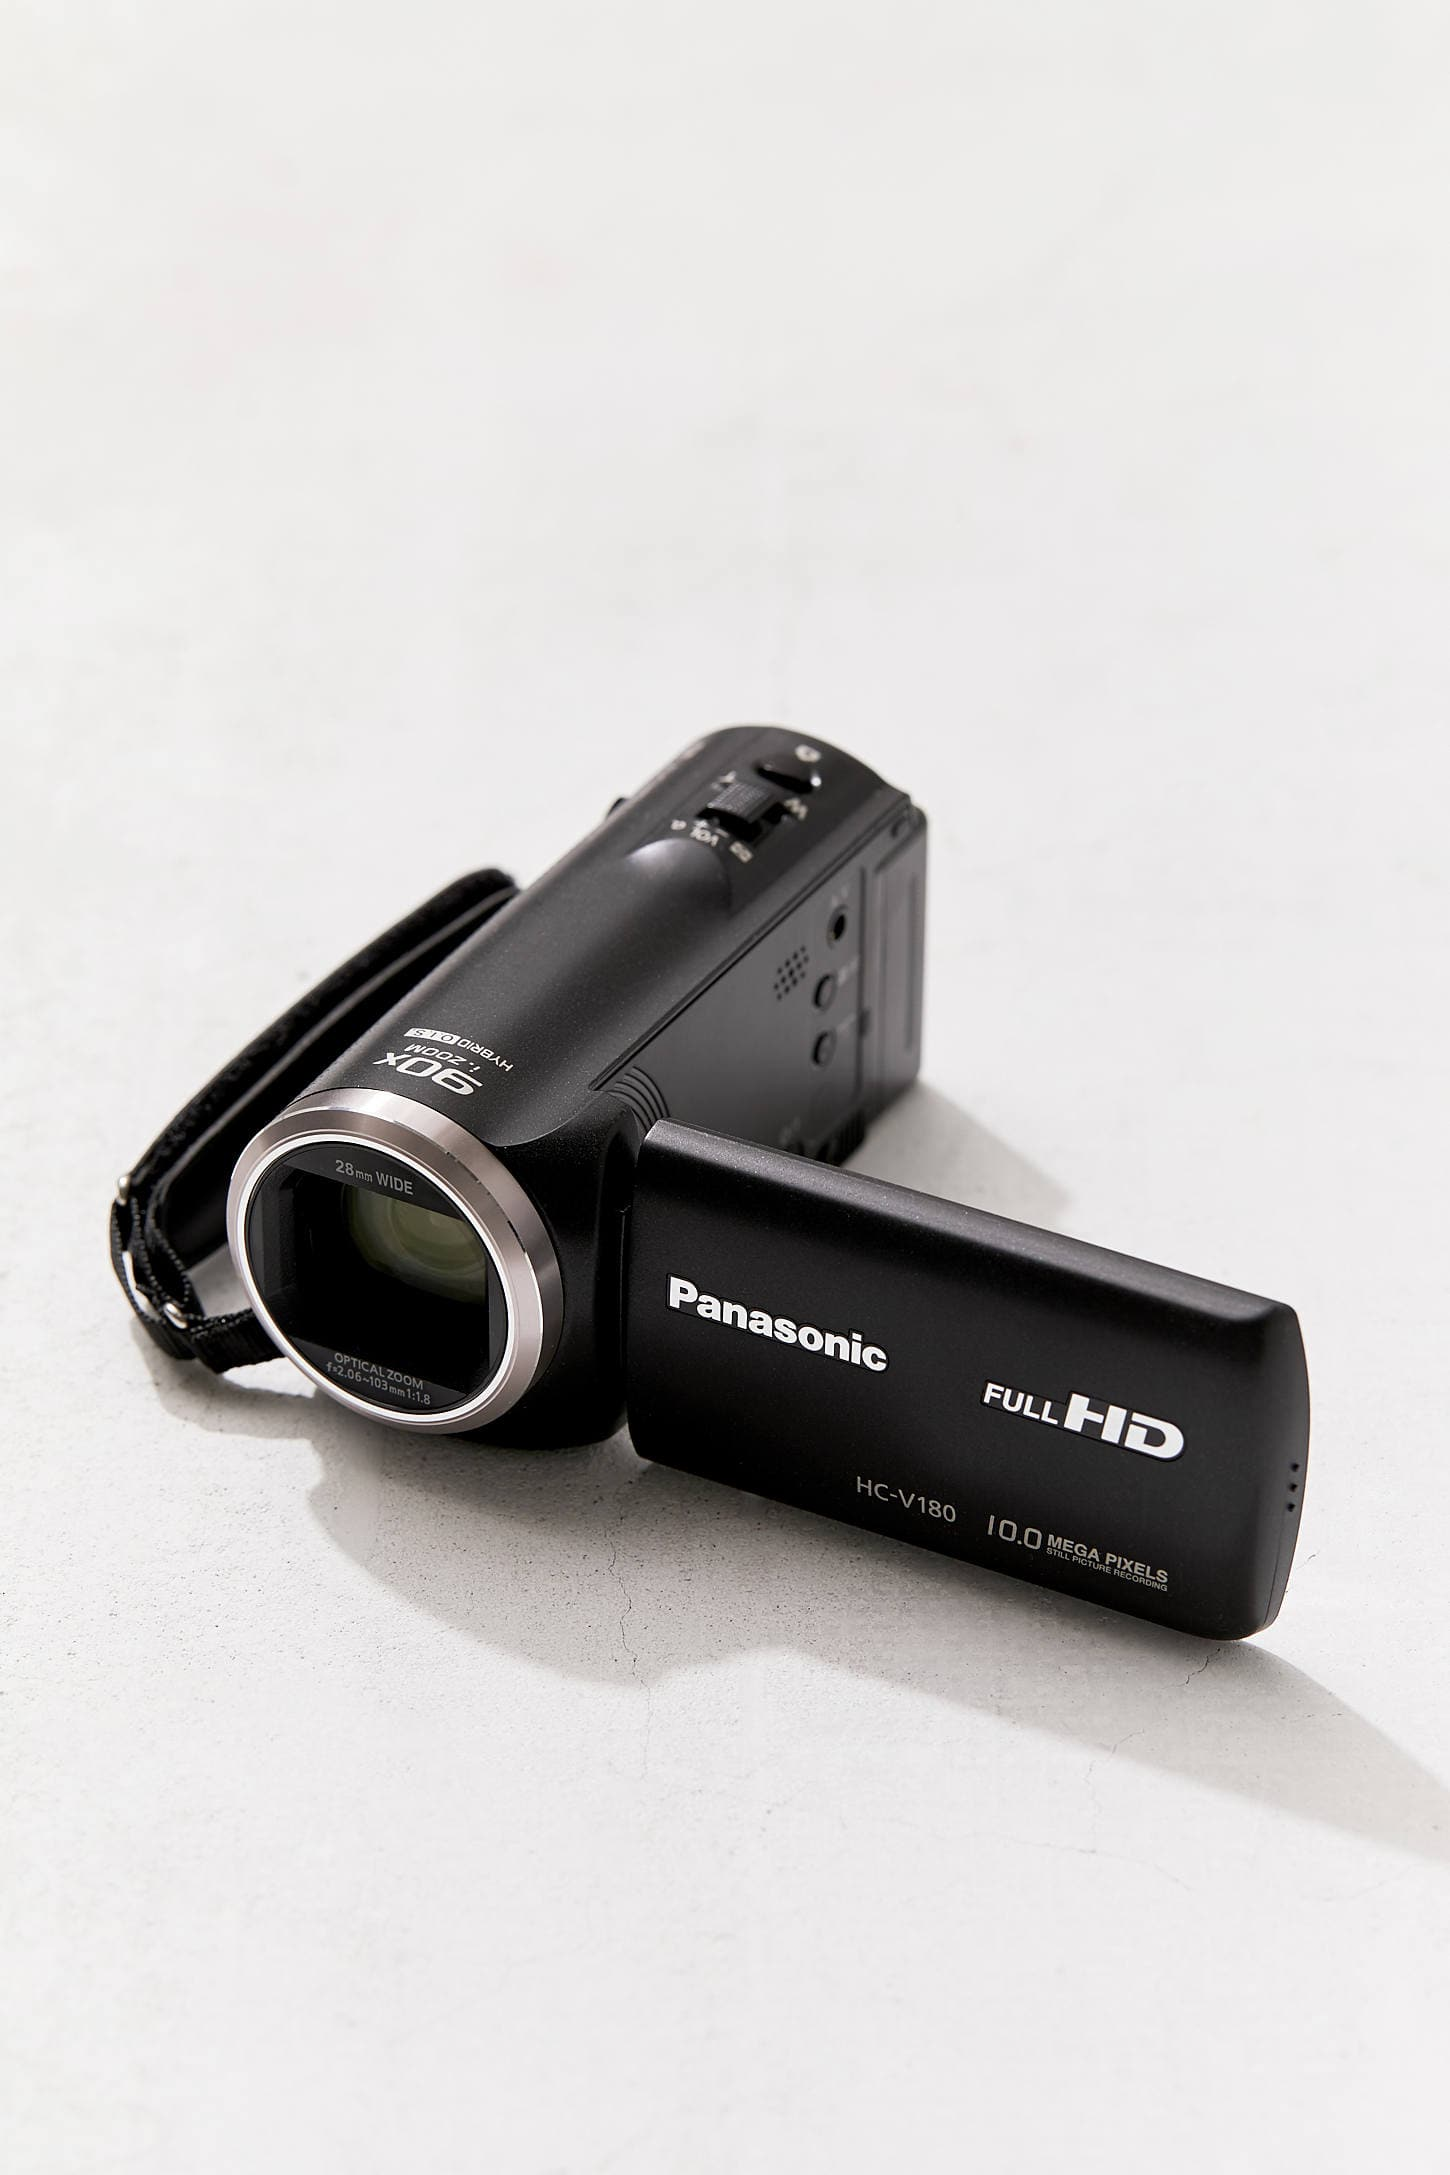 Panasonic HC-V180K Camcorder $140 at Urban Outfitters + Free Shipping